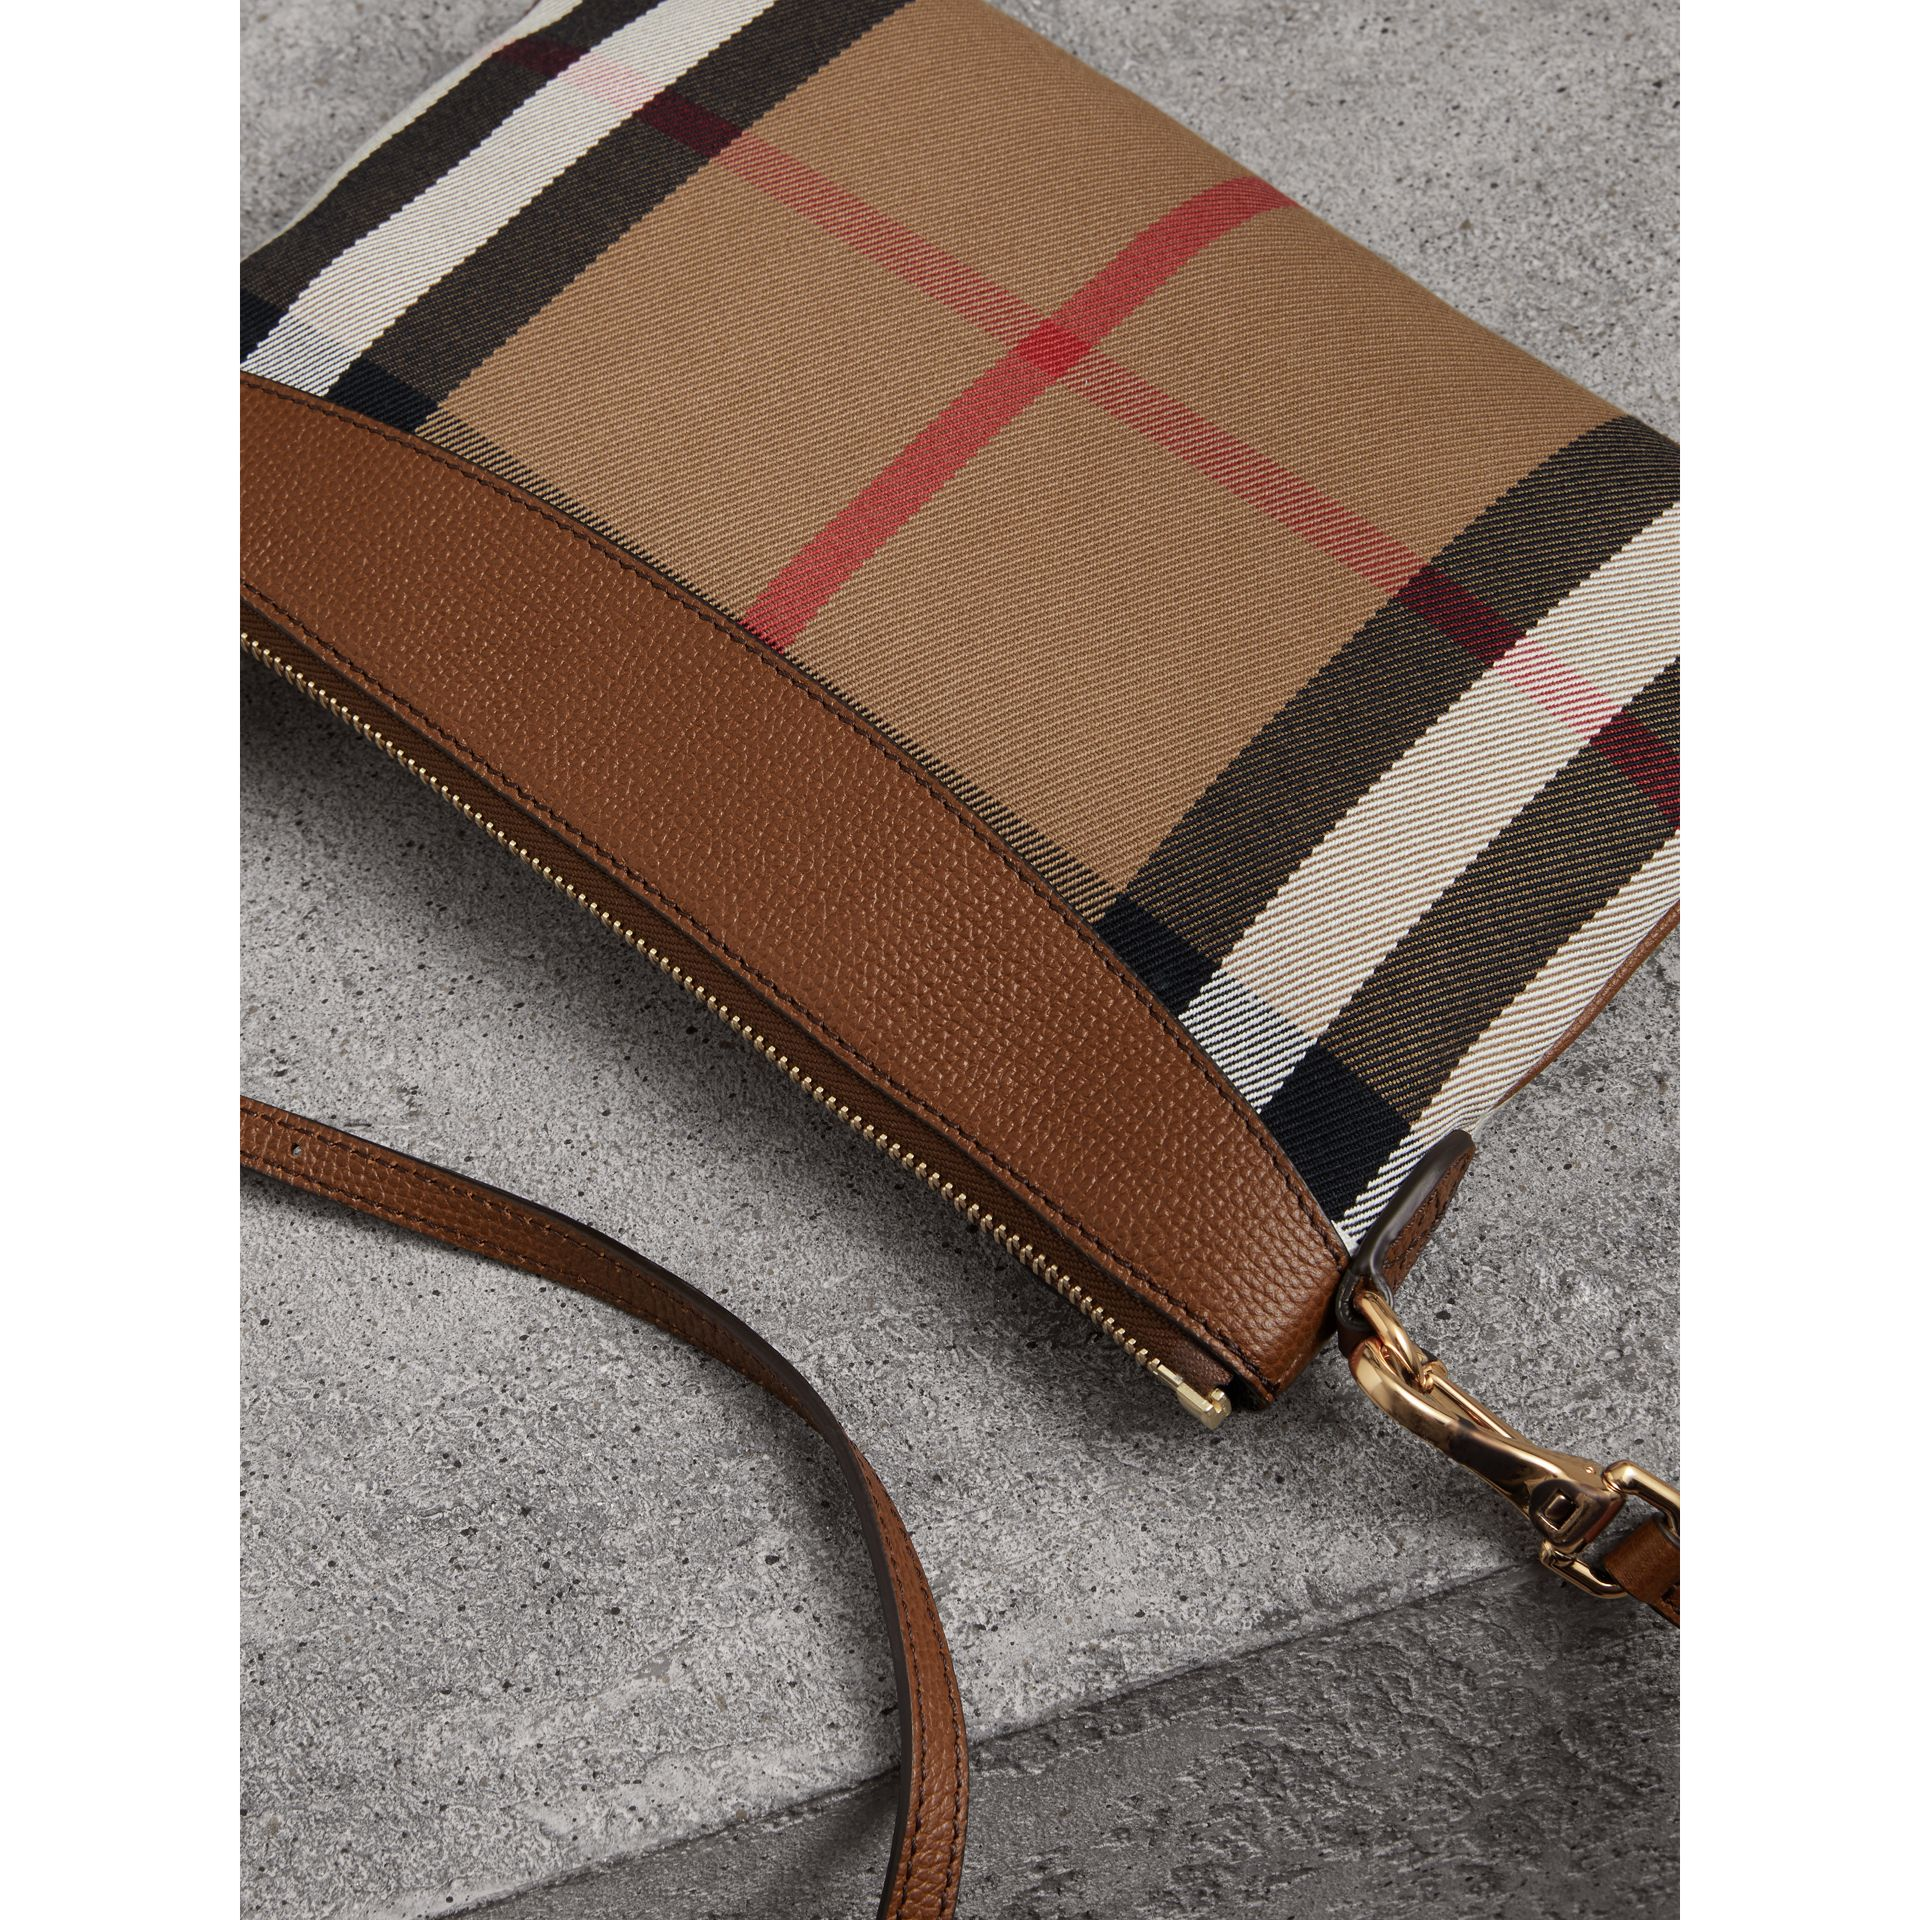 House Check and Leather Clutch Bag in Tan - Women | Burberry Singapore - gallery image 3